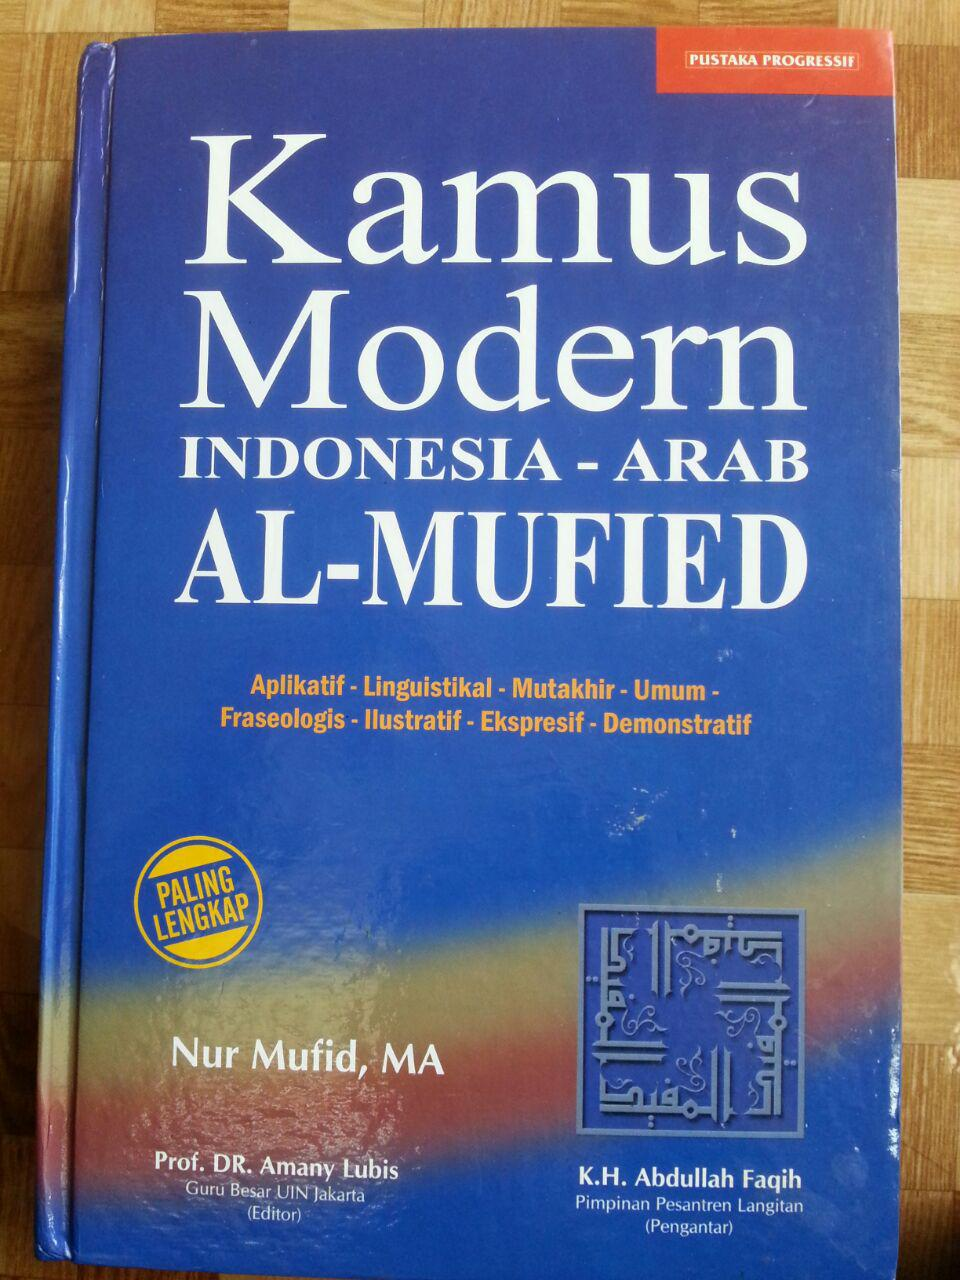 Kamus Modern Indonesia-Arab Al-Mufied cover 2